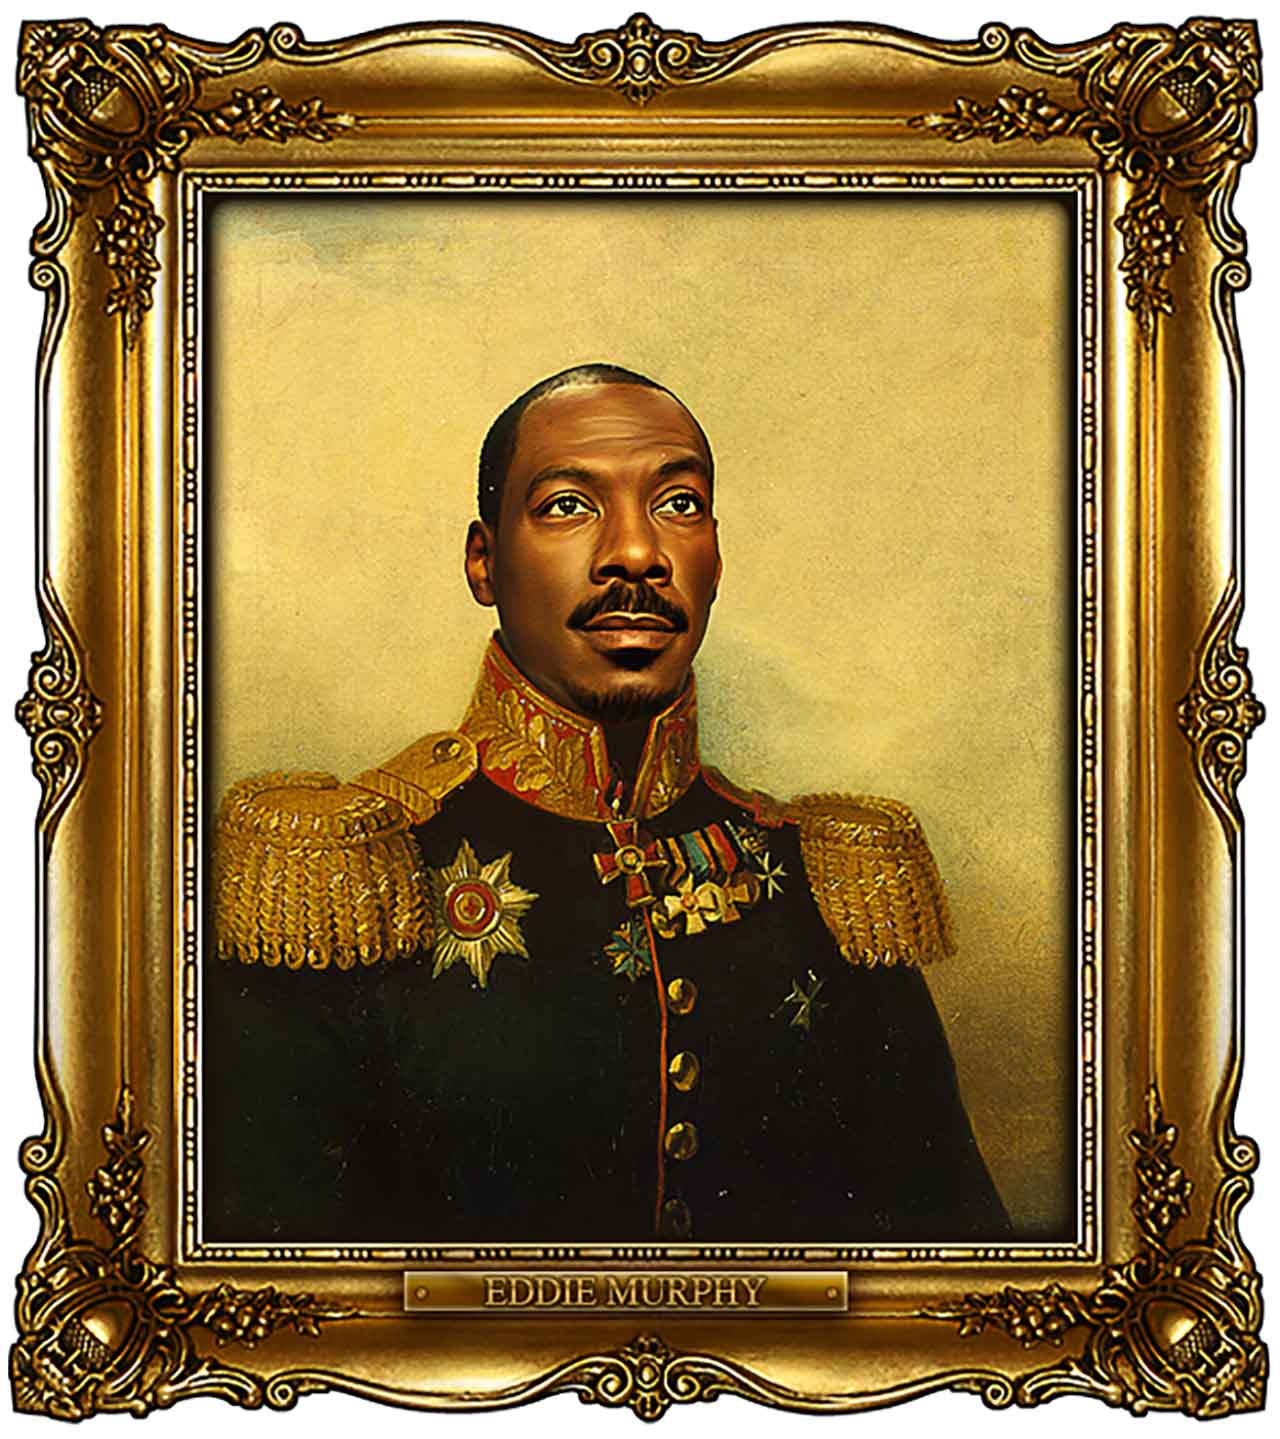 Artist Turns Famous Actors Into Russian Generals - Eddie Murphy